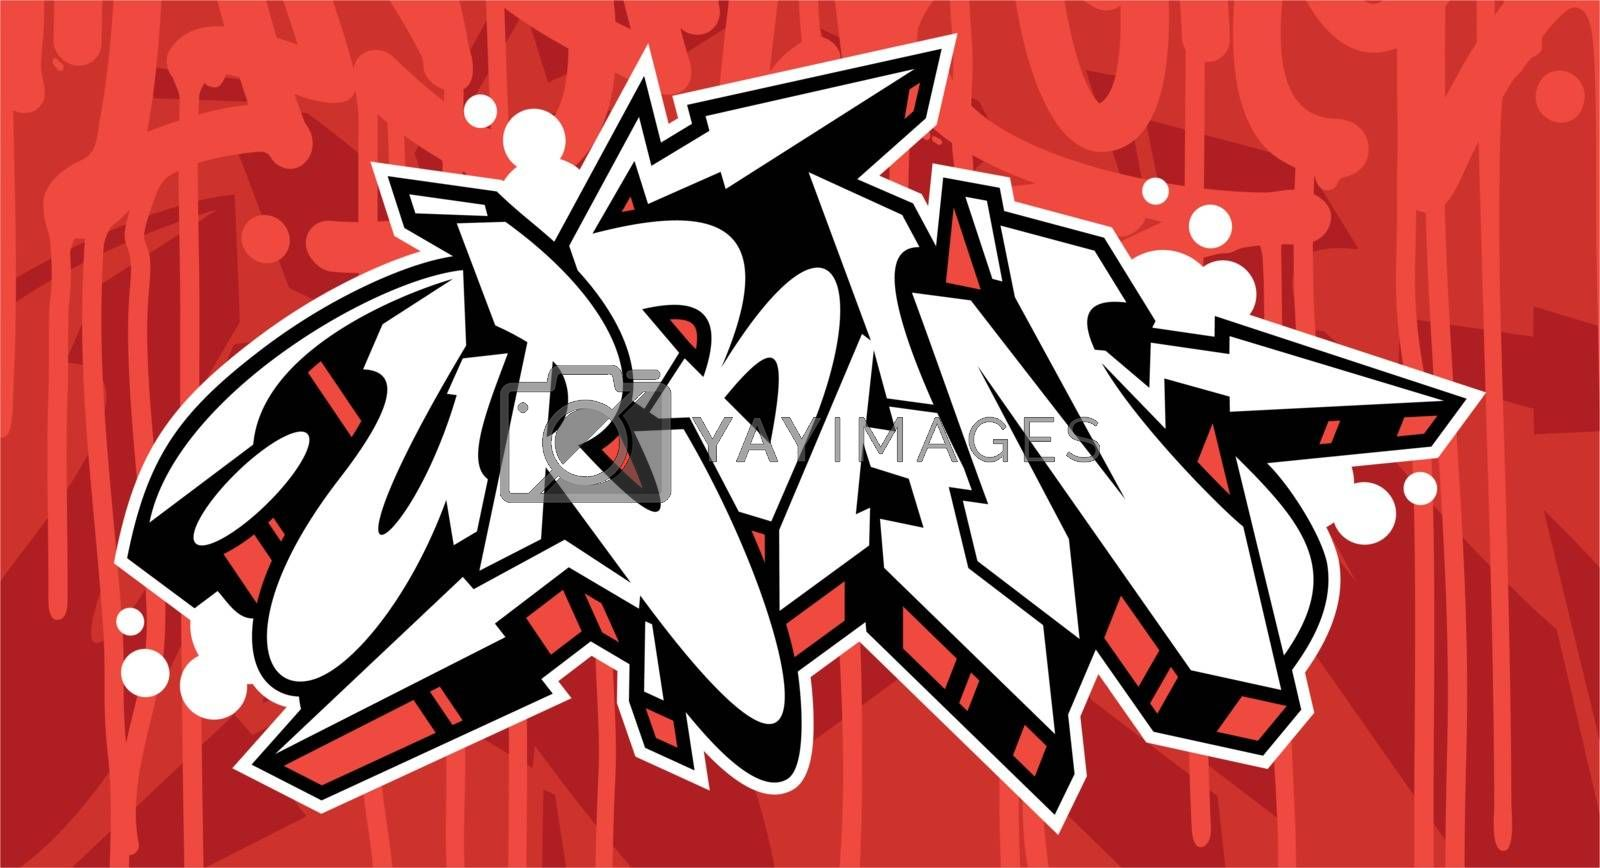 Urban Graffiti Font Lettering With A Red Background